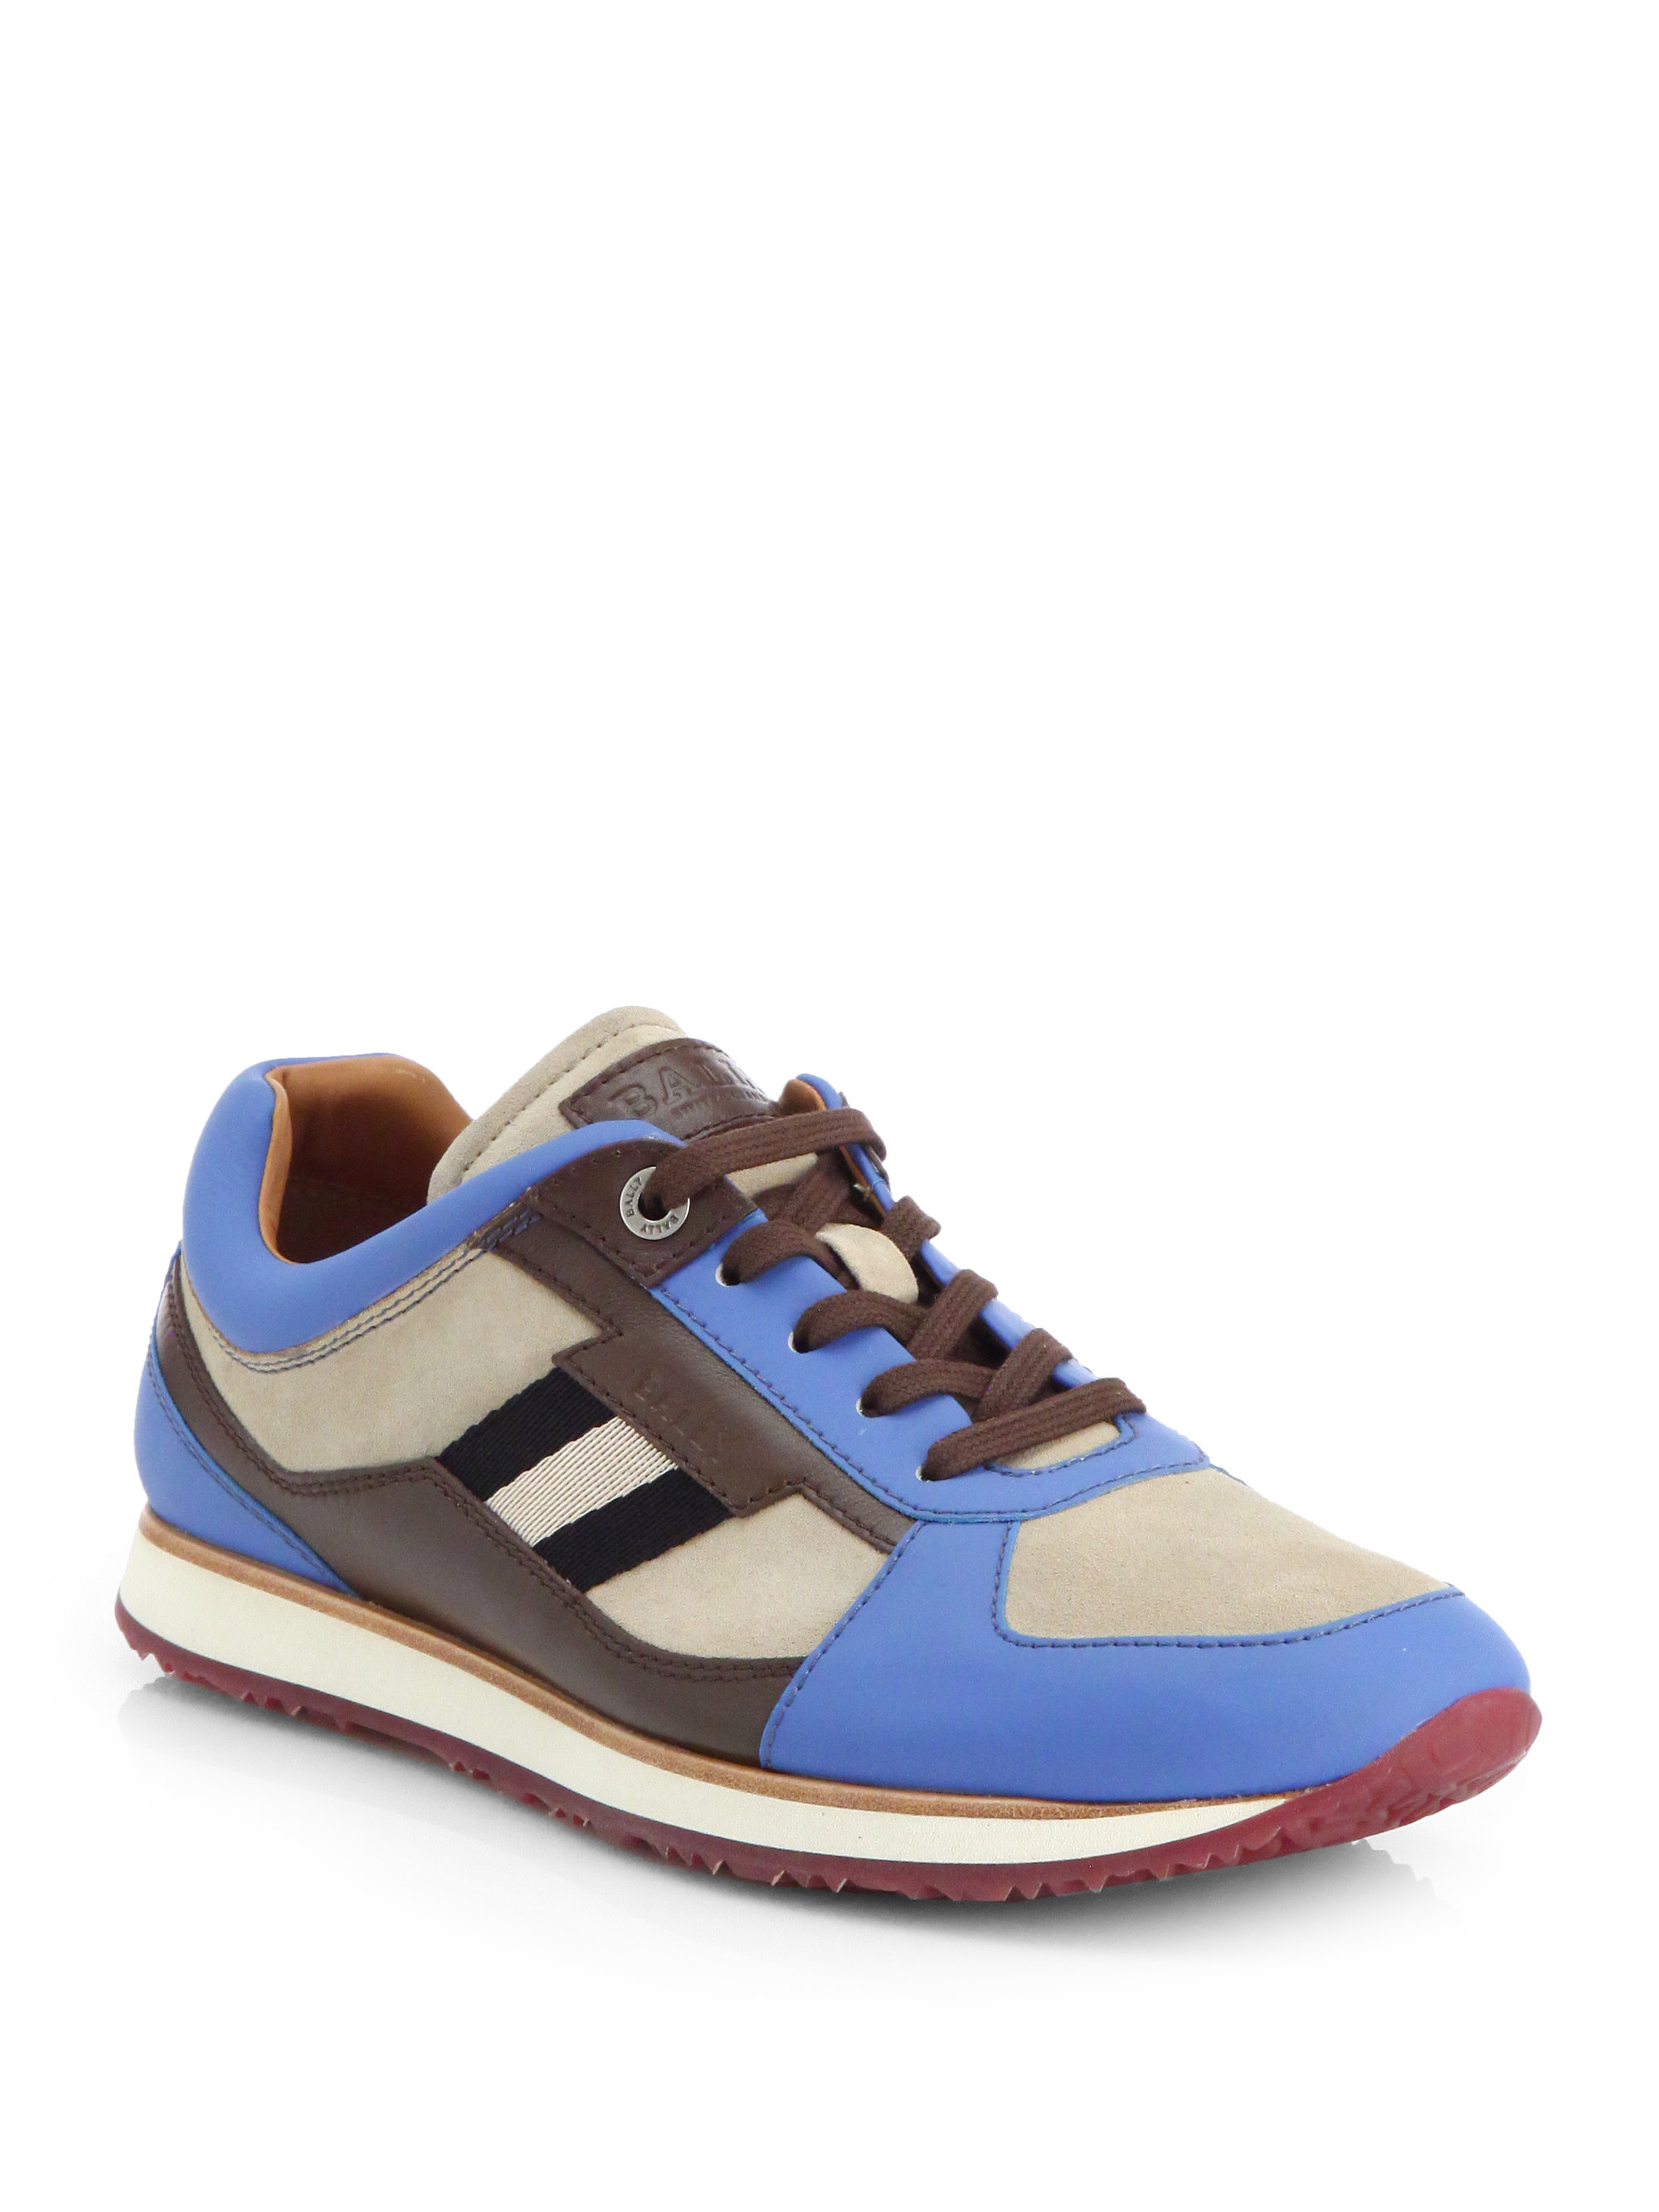 Bally Colorblock Sneakers In Blue For Men